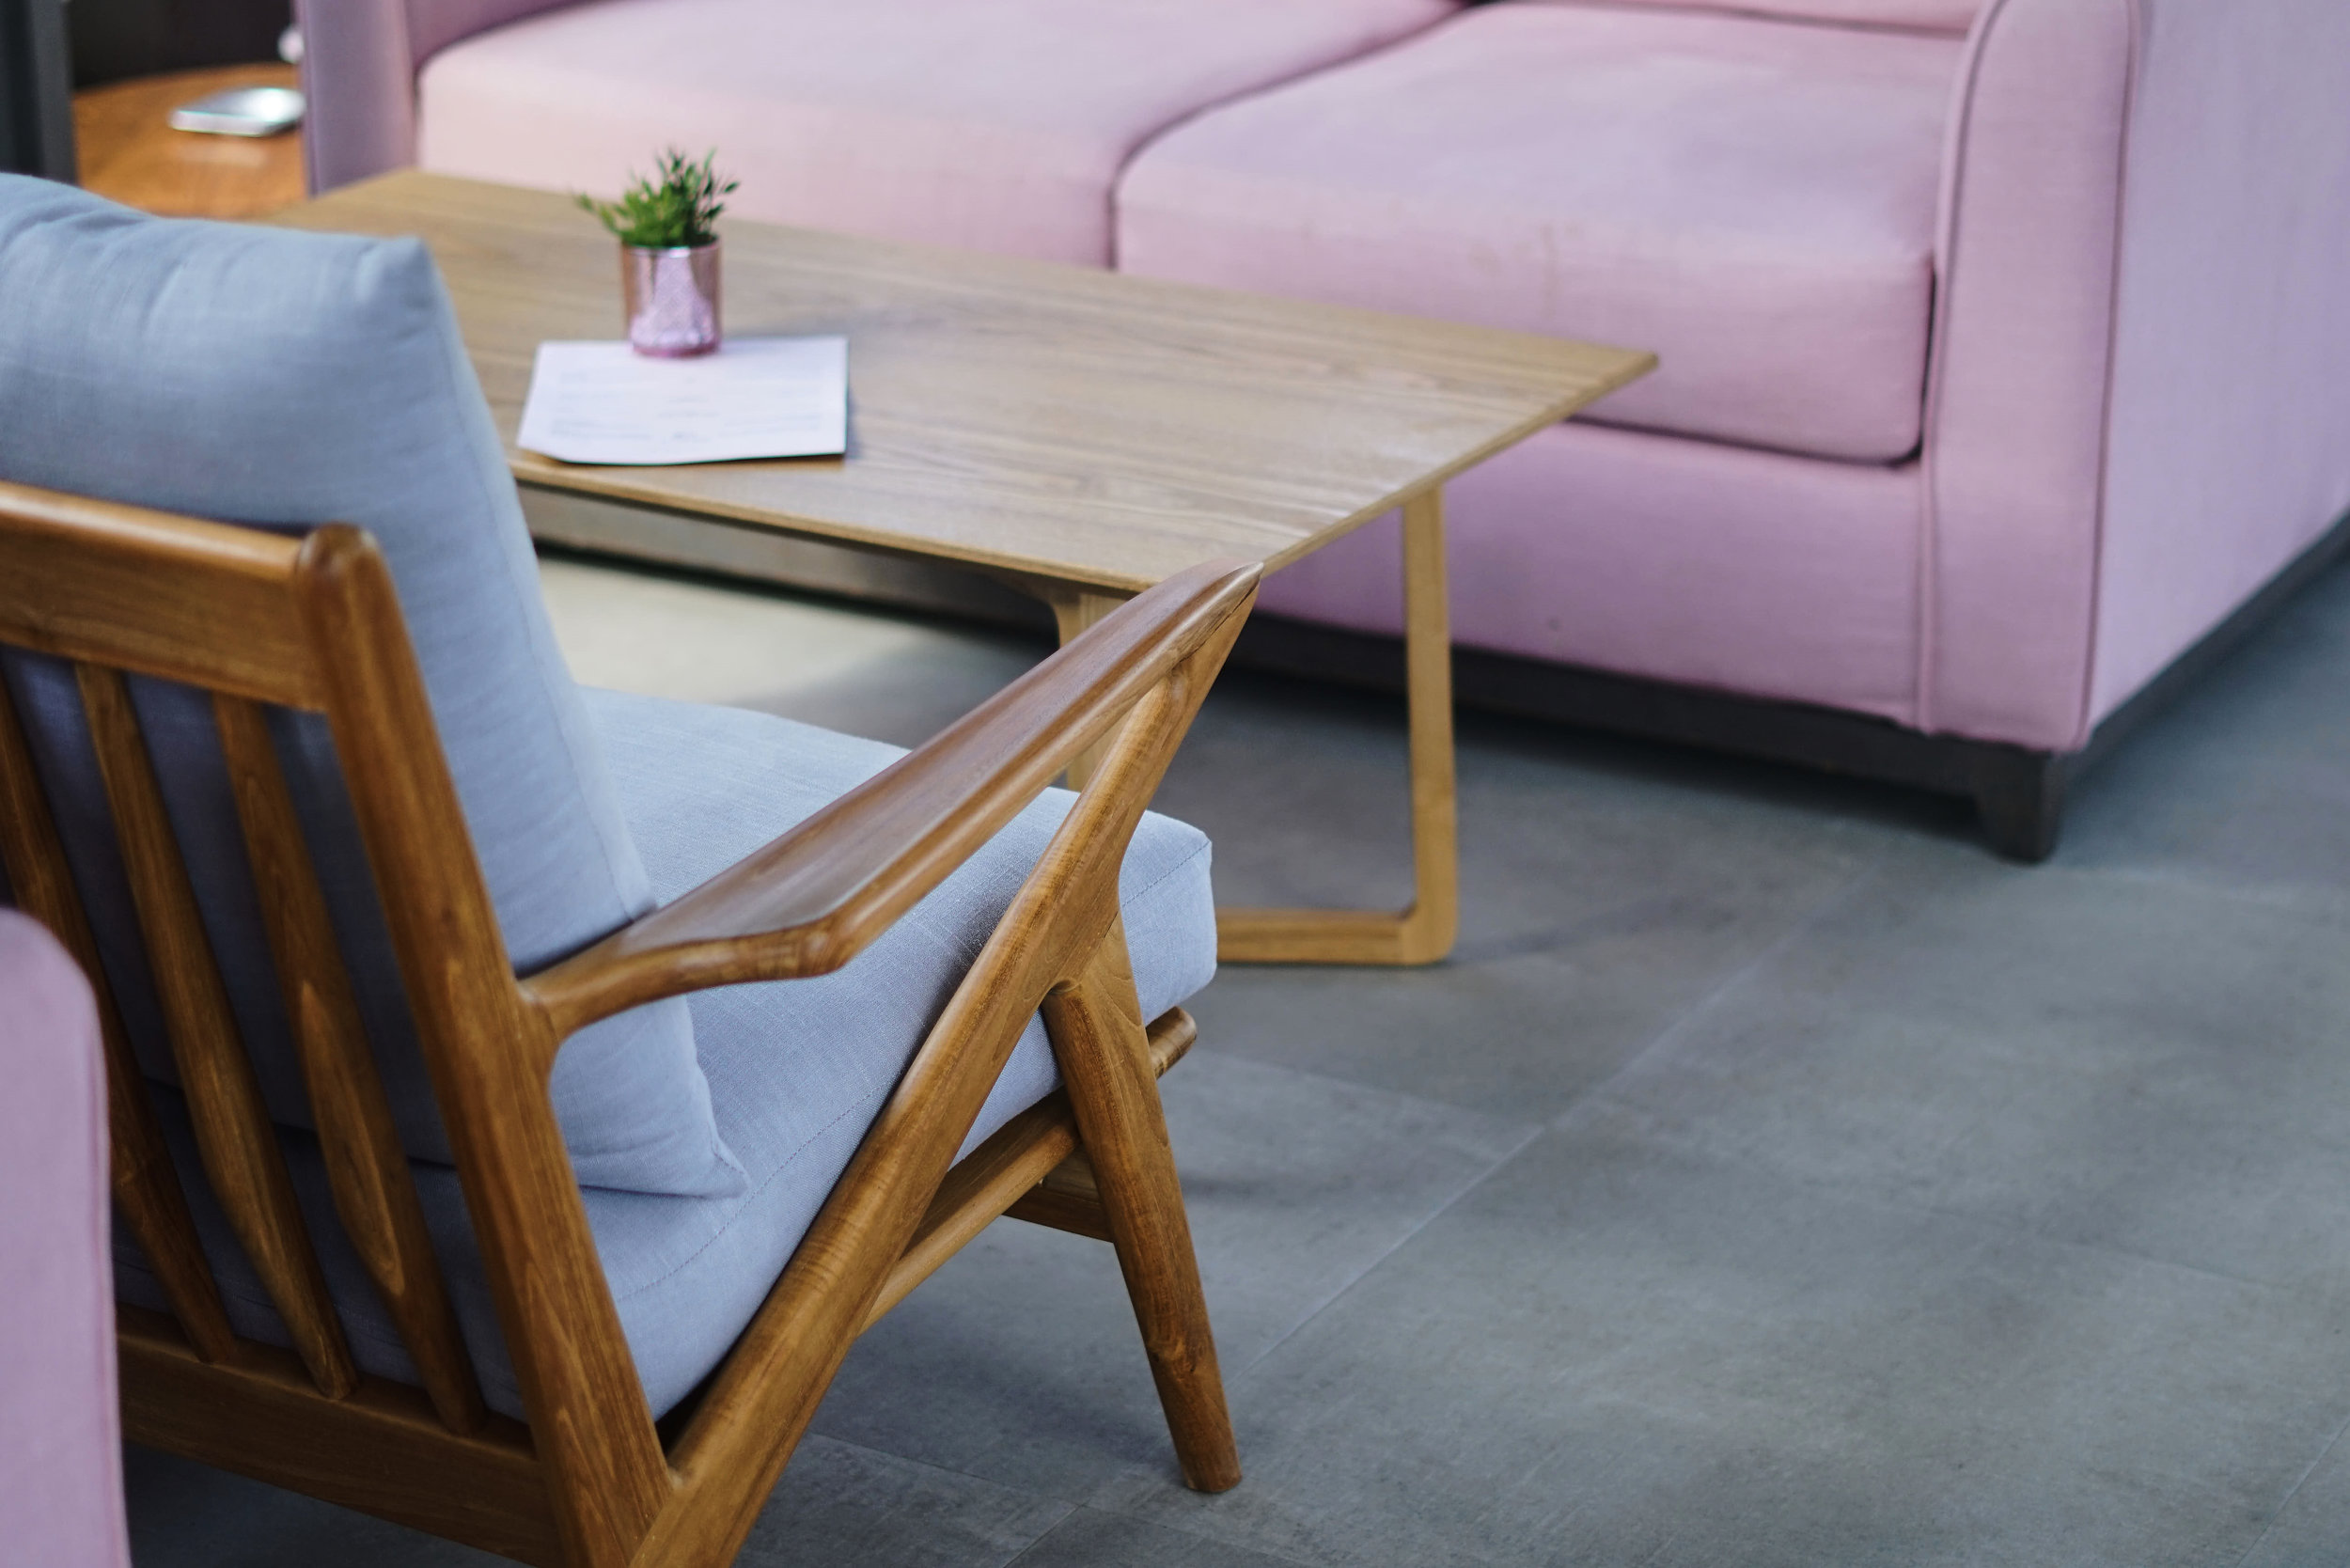 Pictures: Design Hunger x Lukas Vrtilek for Crate Lounge